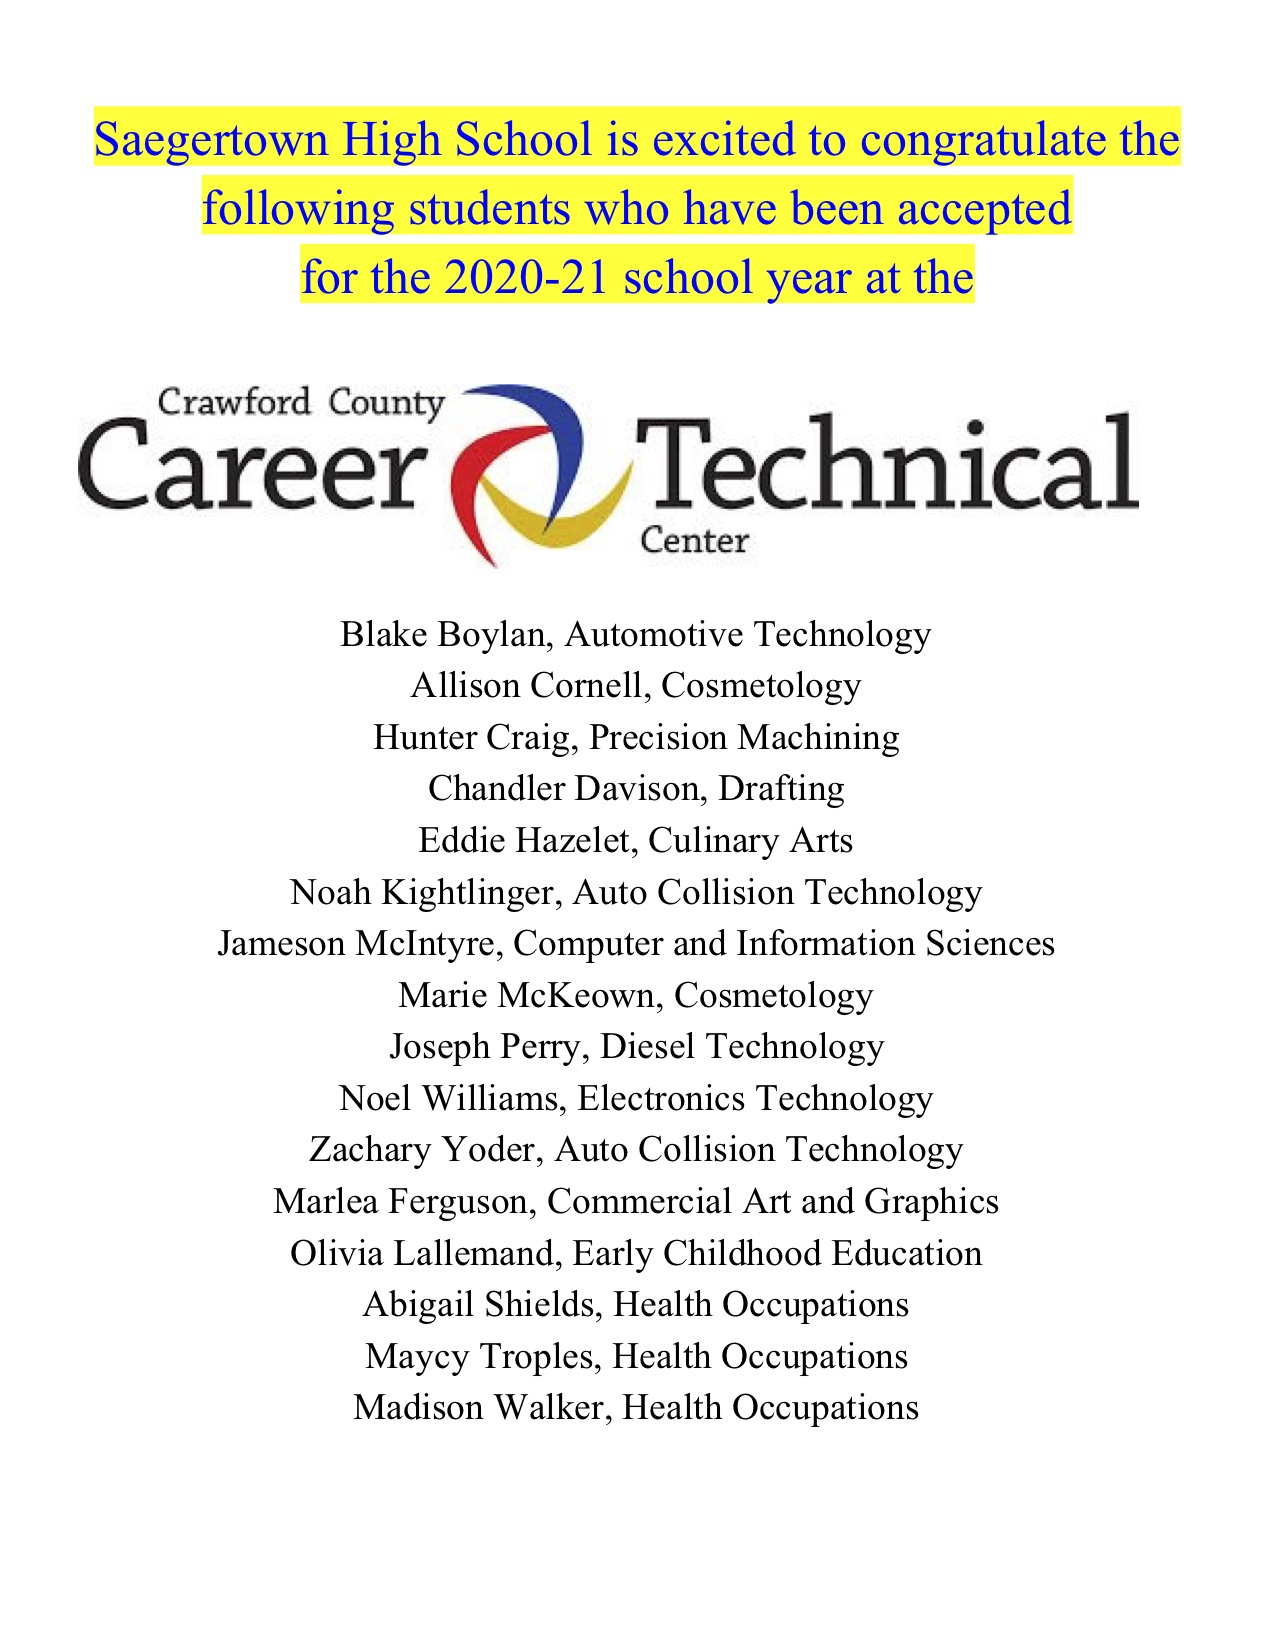 CCCTC Accepted for 2020-21